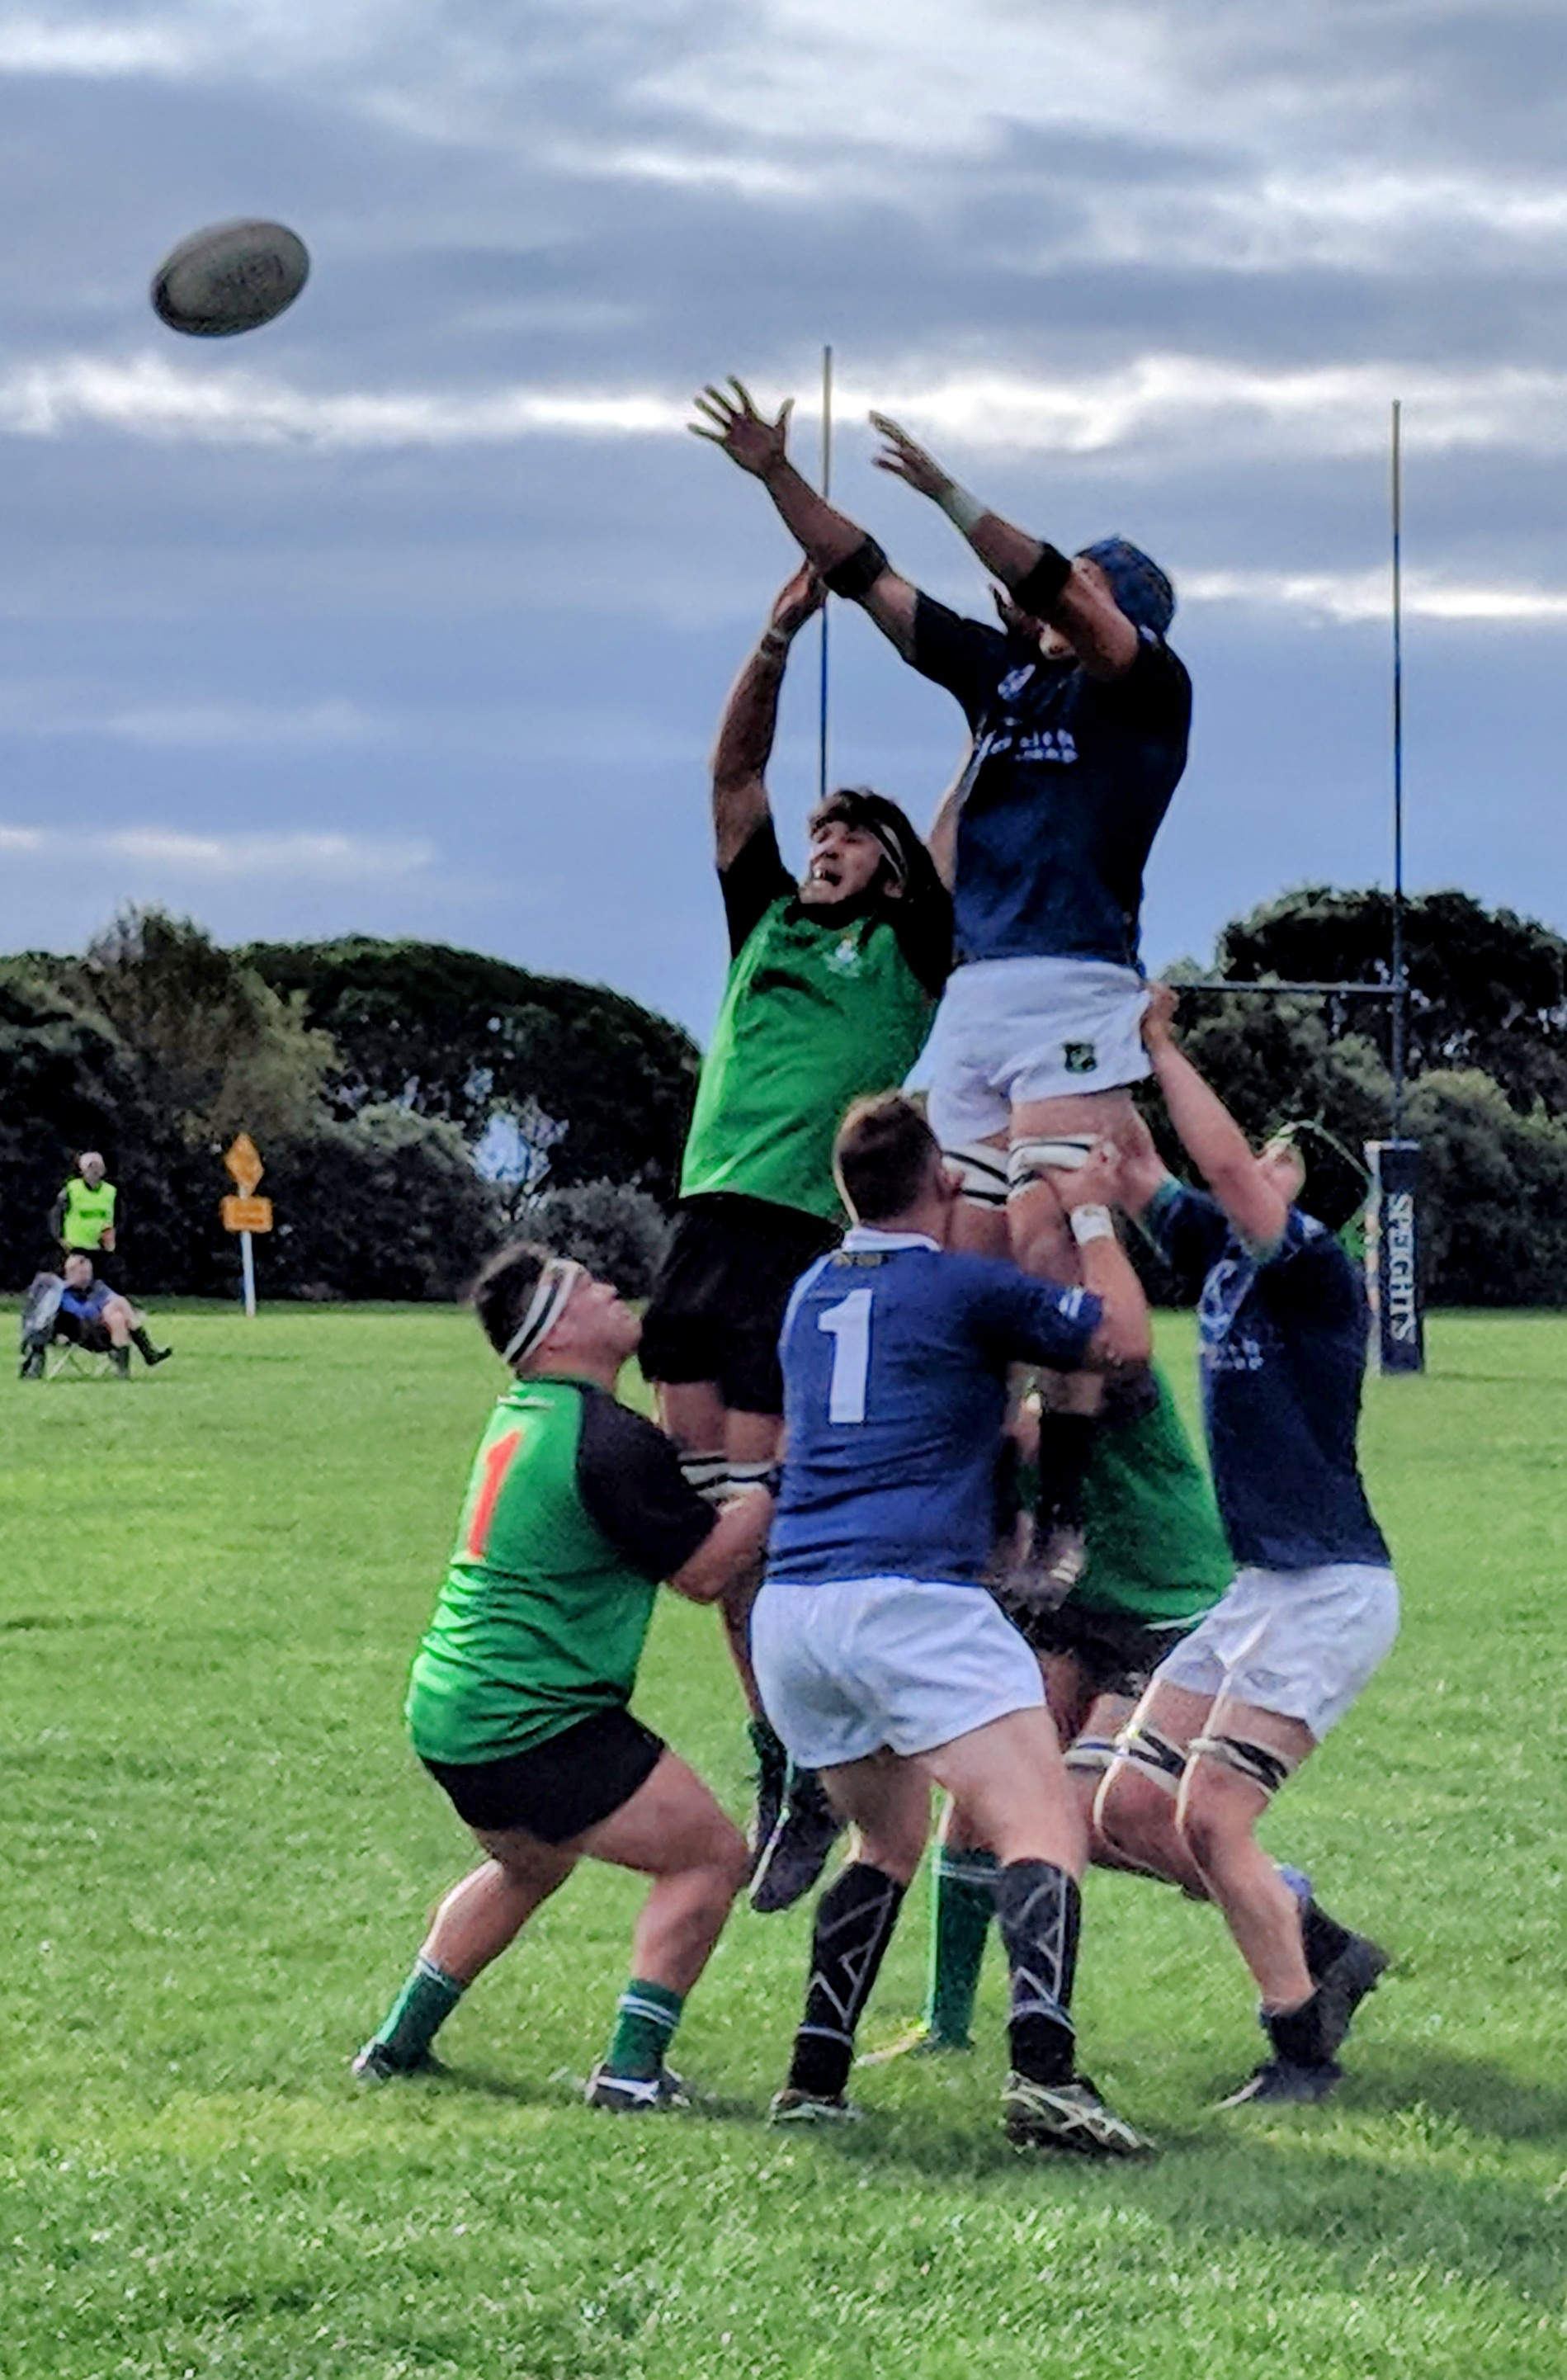 Rugby lineout lift